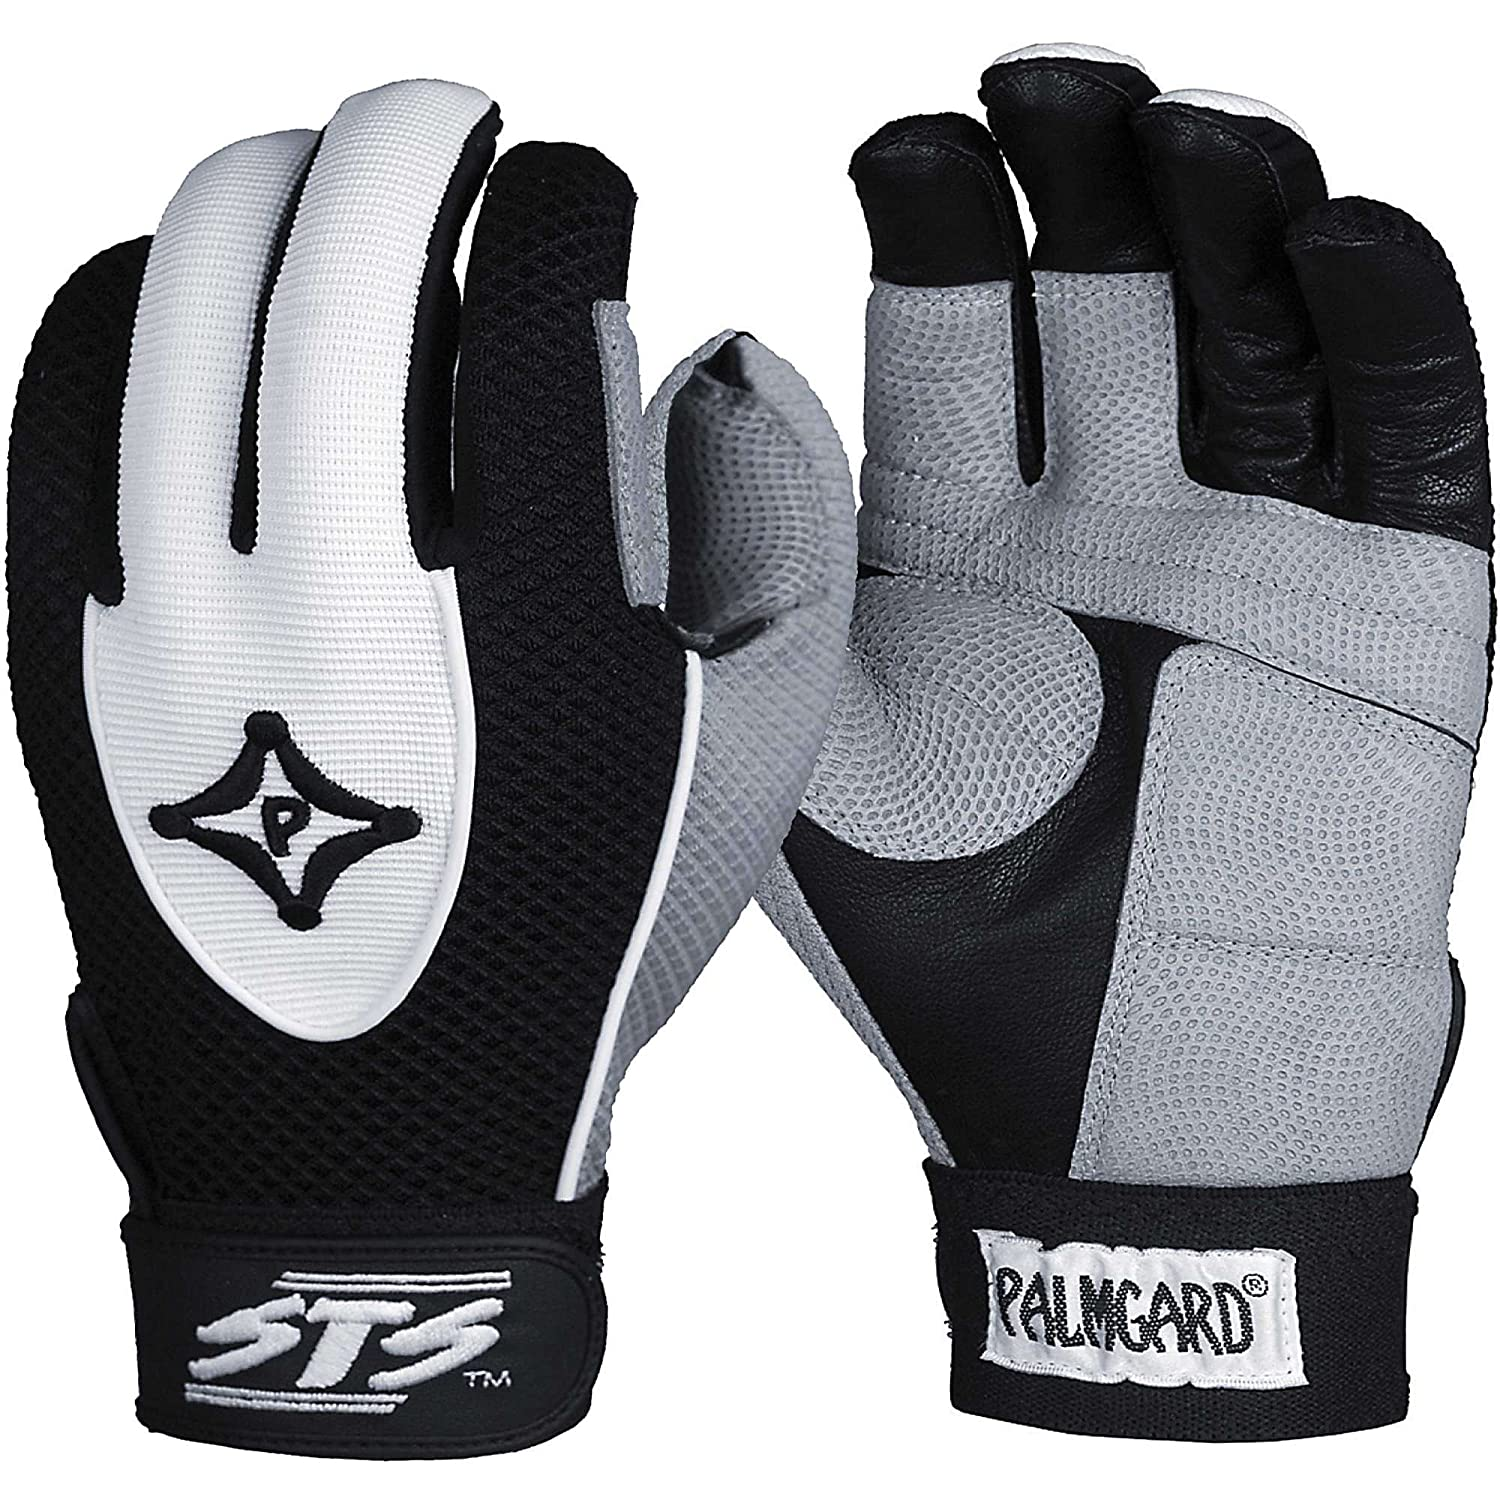 Palmgard STS Youth Batting Glove Pair Pack